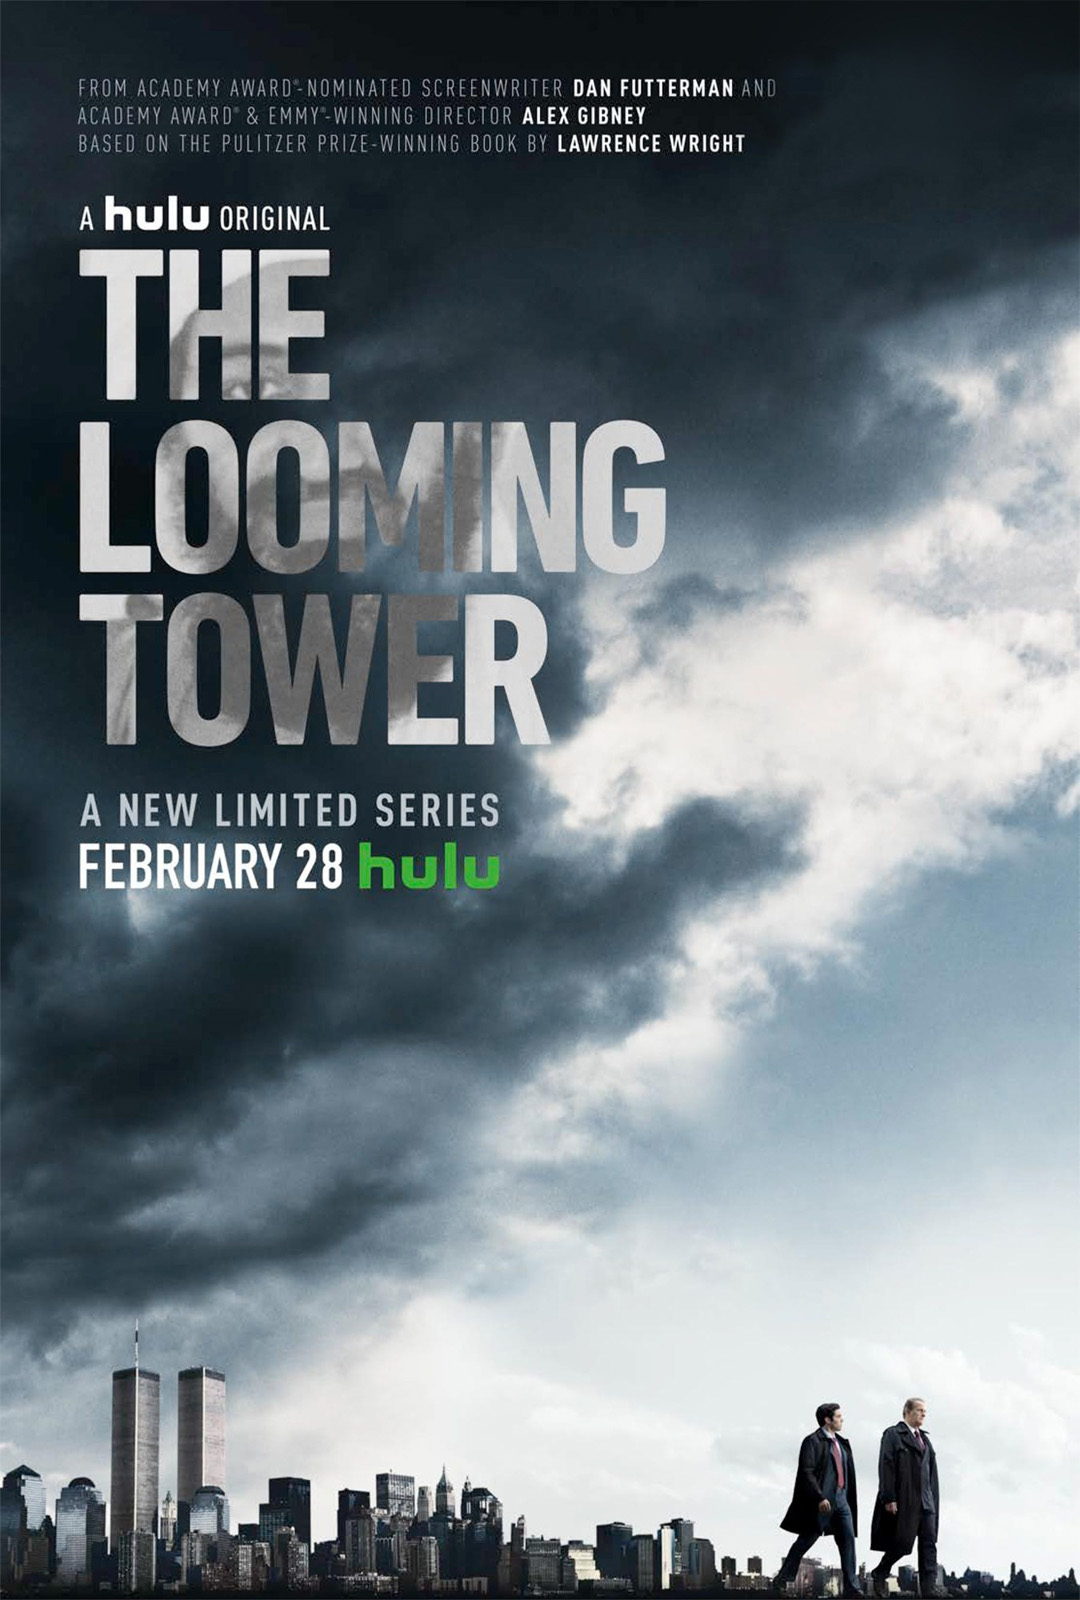 Affiche de la série The Looming Tower